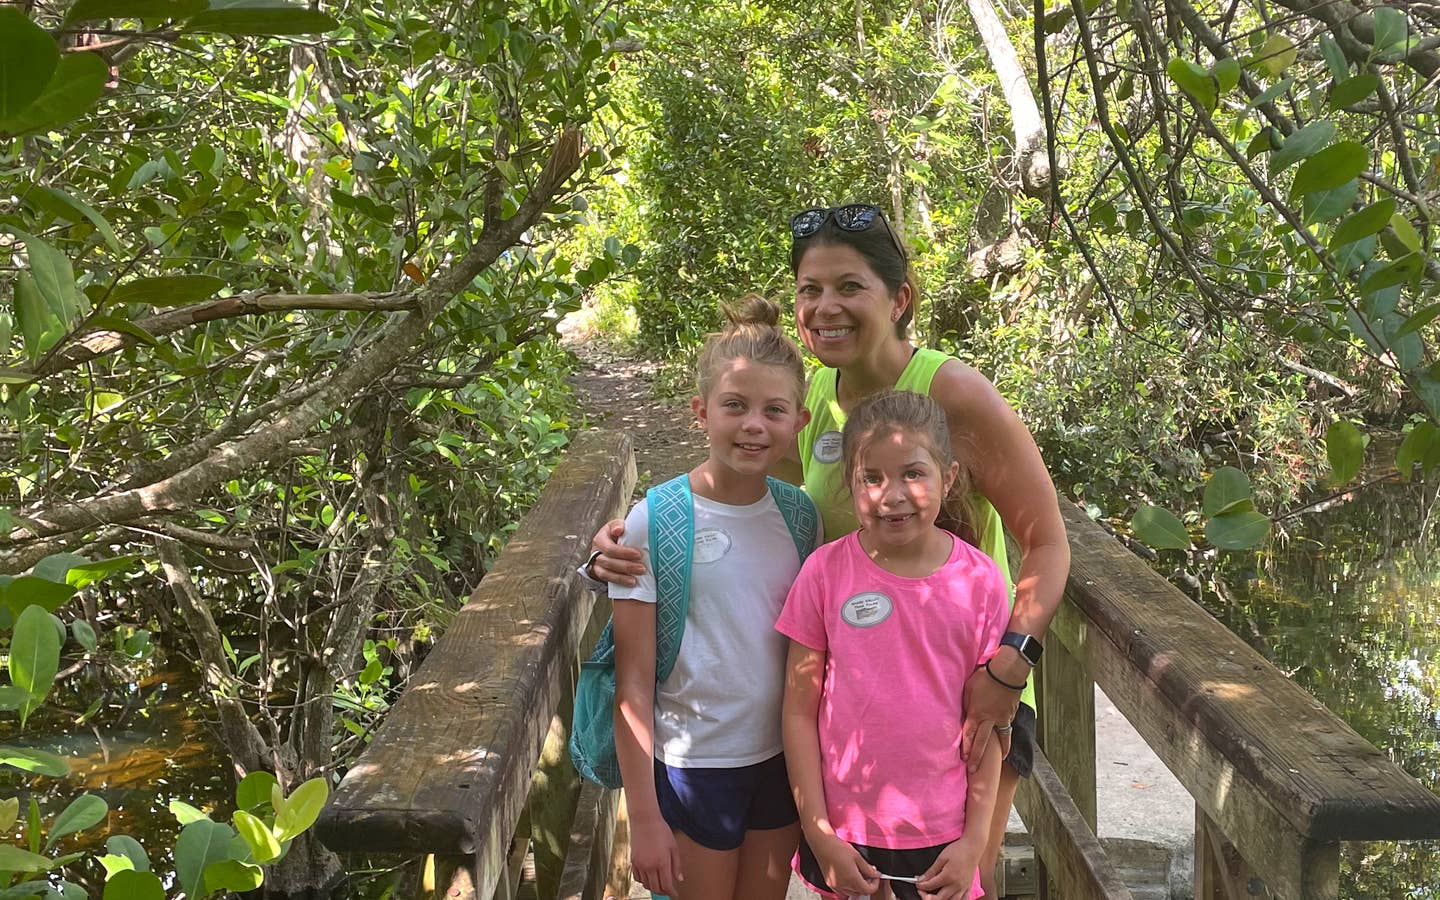 A caucasian woman (middle) poses with two young caucasian girls (front) on a wooden bridge in the Everglades.